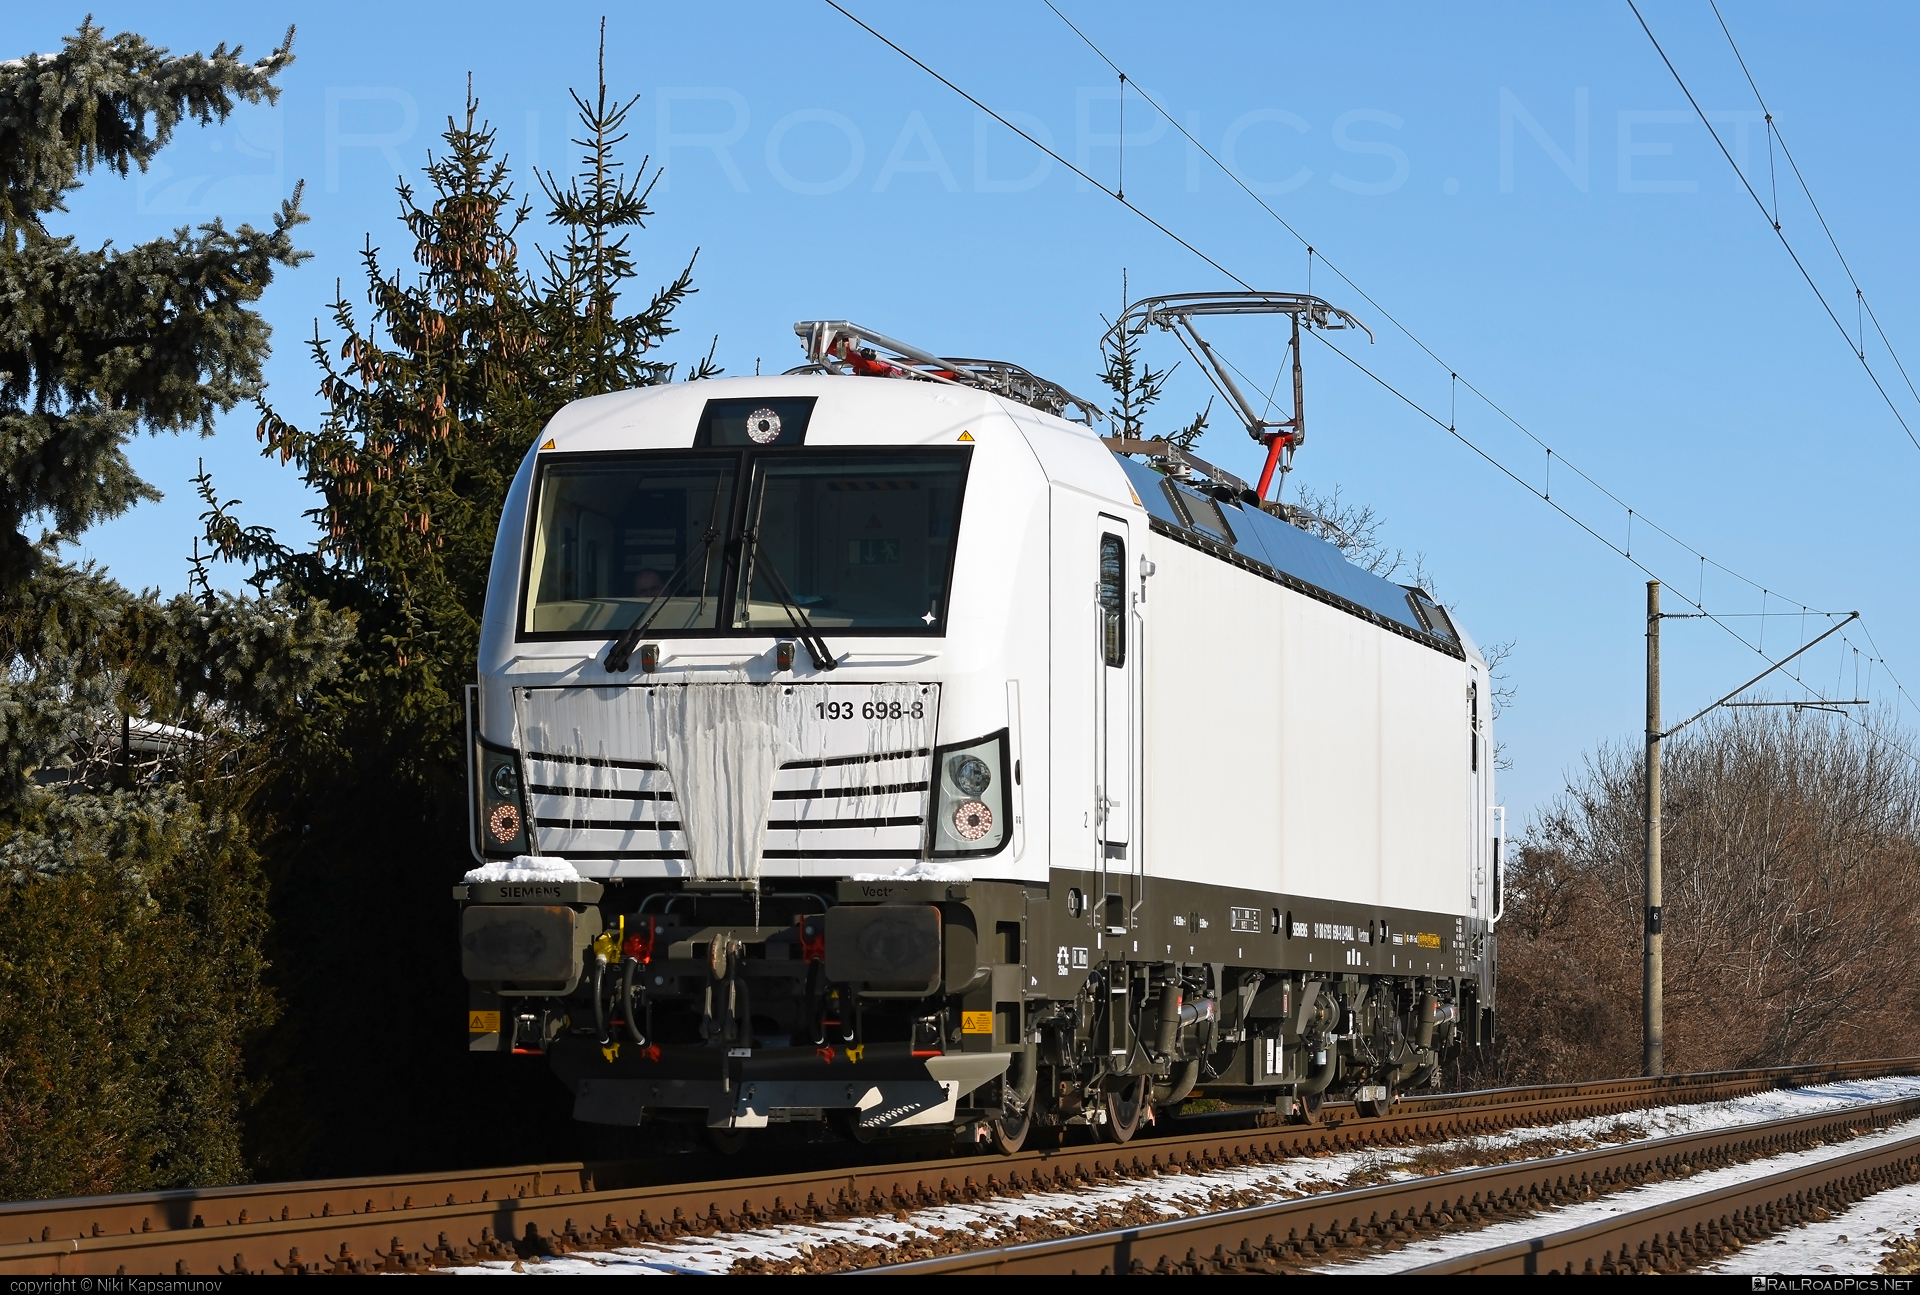 Siemens Vectron MS - 193 698-8 operated by LOKORAIL, a.s. #RollingStockLease #RollingStockLeaseSro #lokorail #lrl #raill #siemens #siemensvectron #siemensvectronms #vectron #vectronms